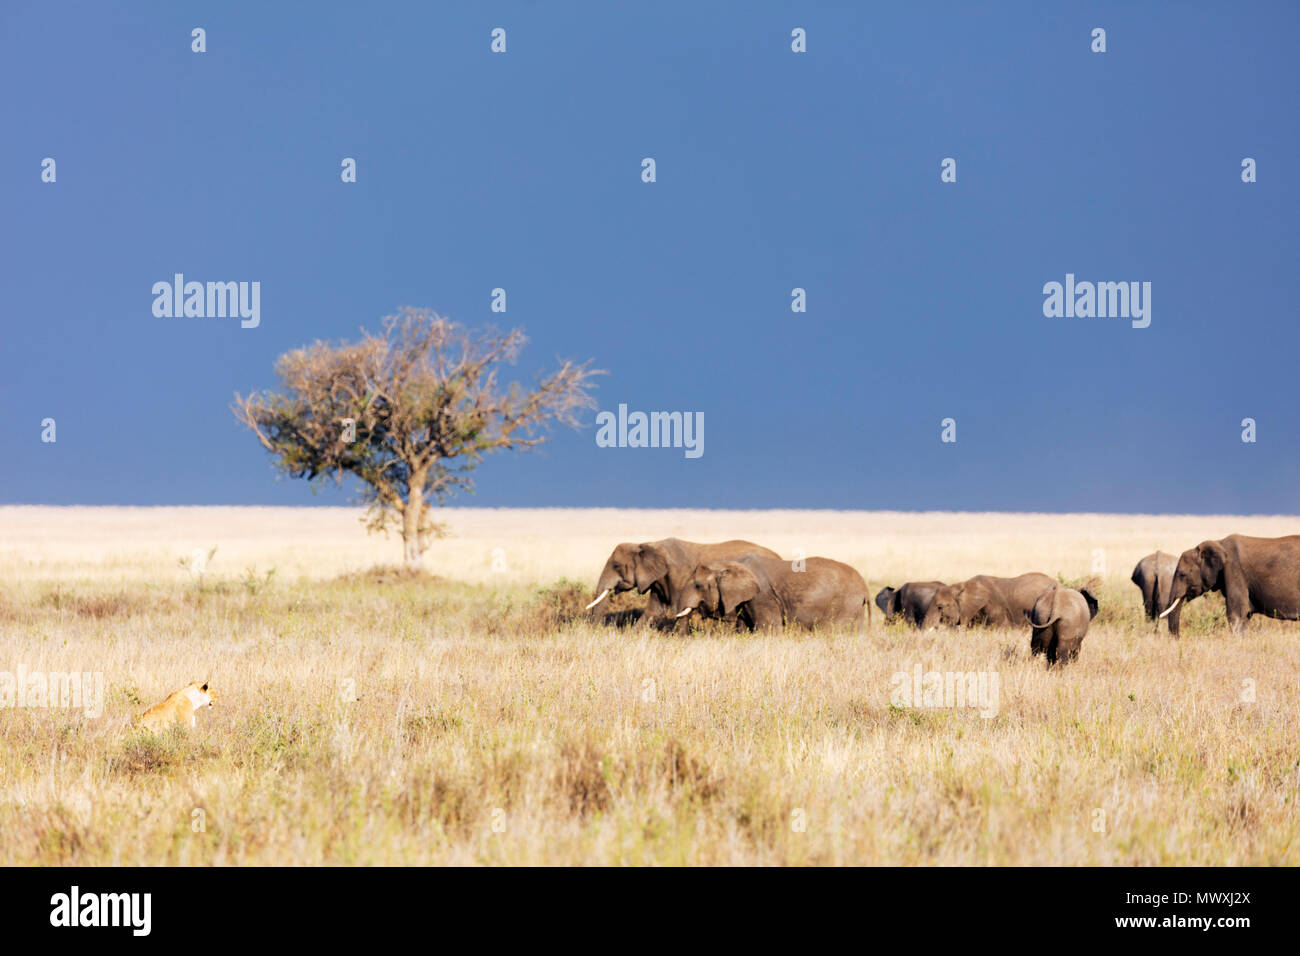 Lioness (Panthera leo) and African elephant (Loxodonta africana), Serengeti National Park, UNESCO World Heritage Site, Tanzania, East Africa, Africa - Stock Image